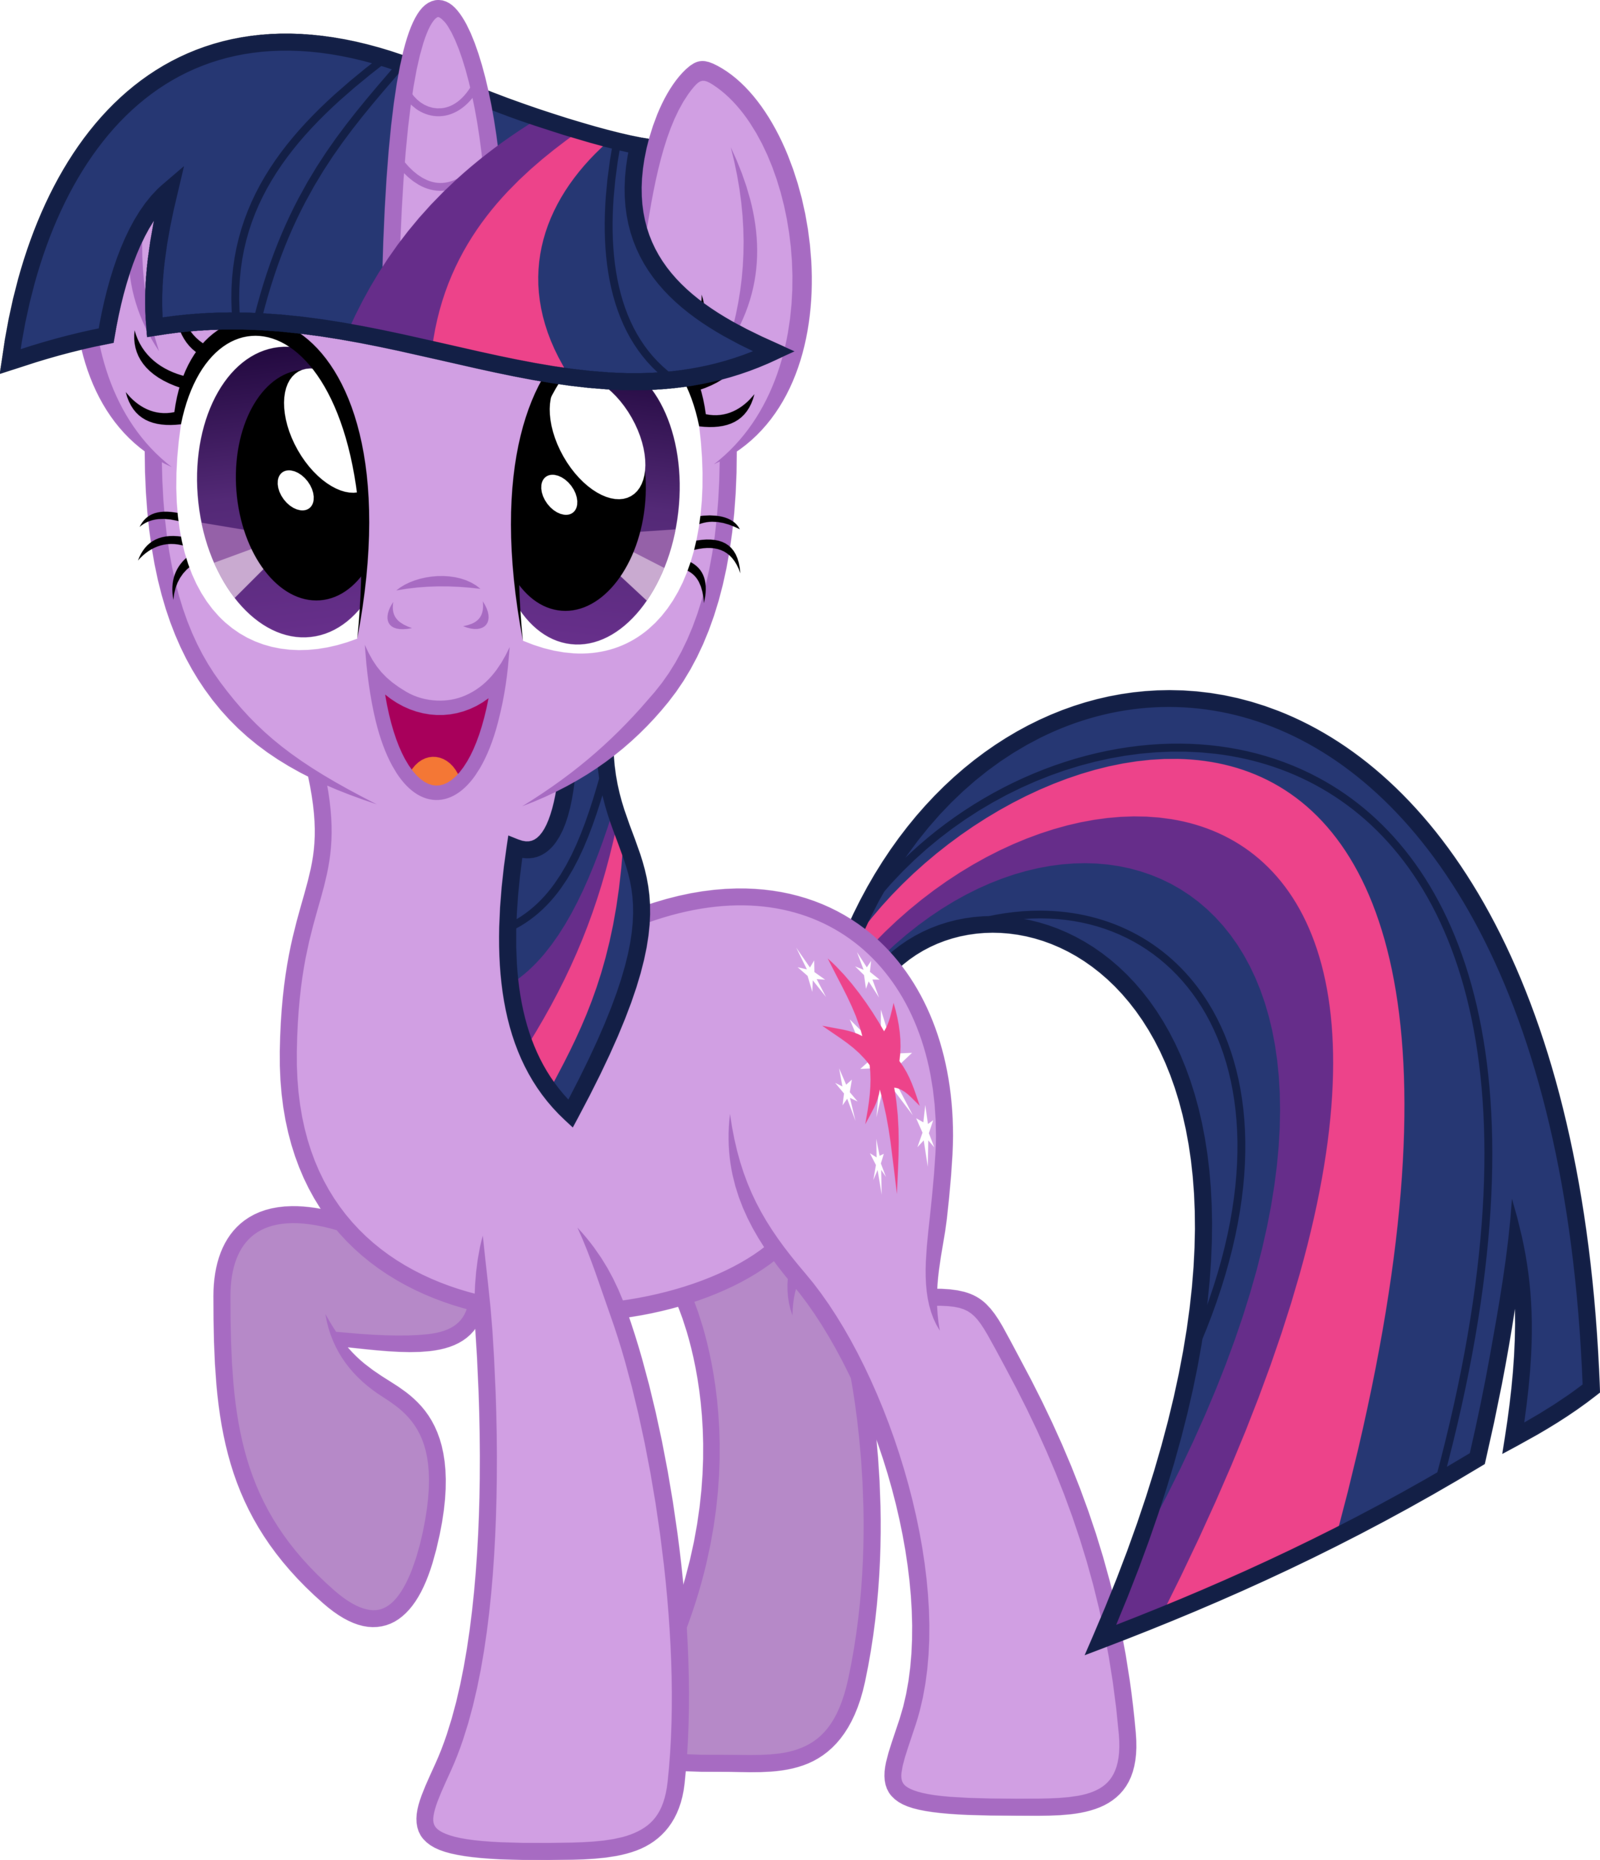 Imagen - Twilight sparkle 13 by xpesifeindx-d5mddbk.png ...